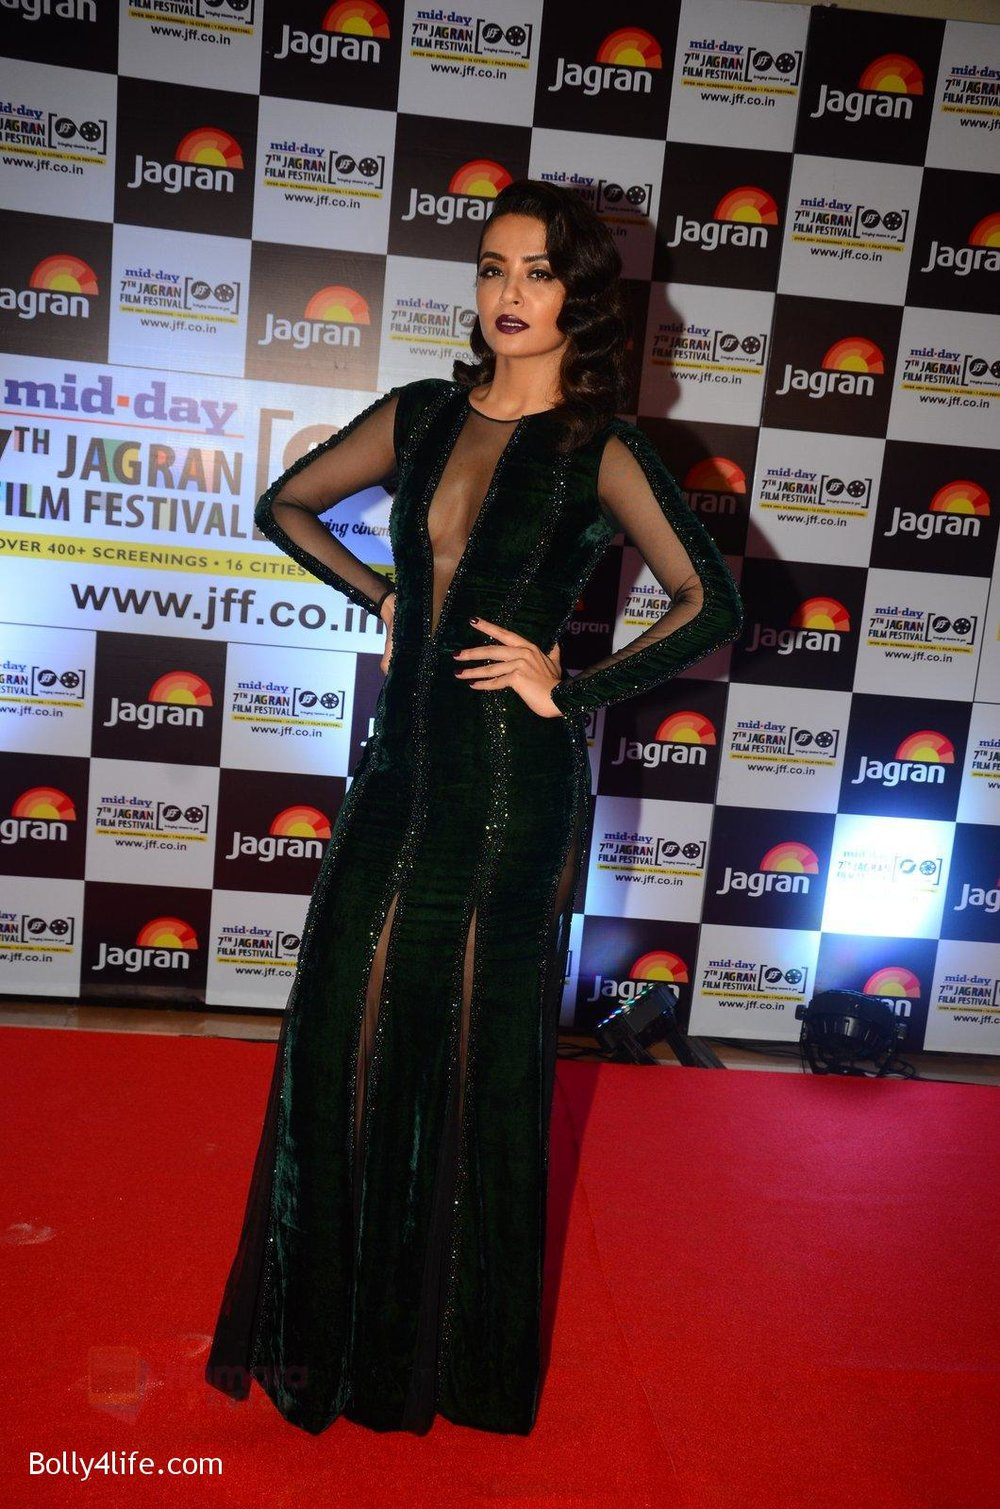 Surveen-Chawla-at-Jagran-Film-fest-awards-on-30th-Sept-2016-22.jpg